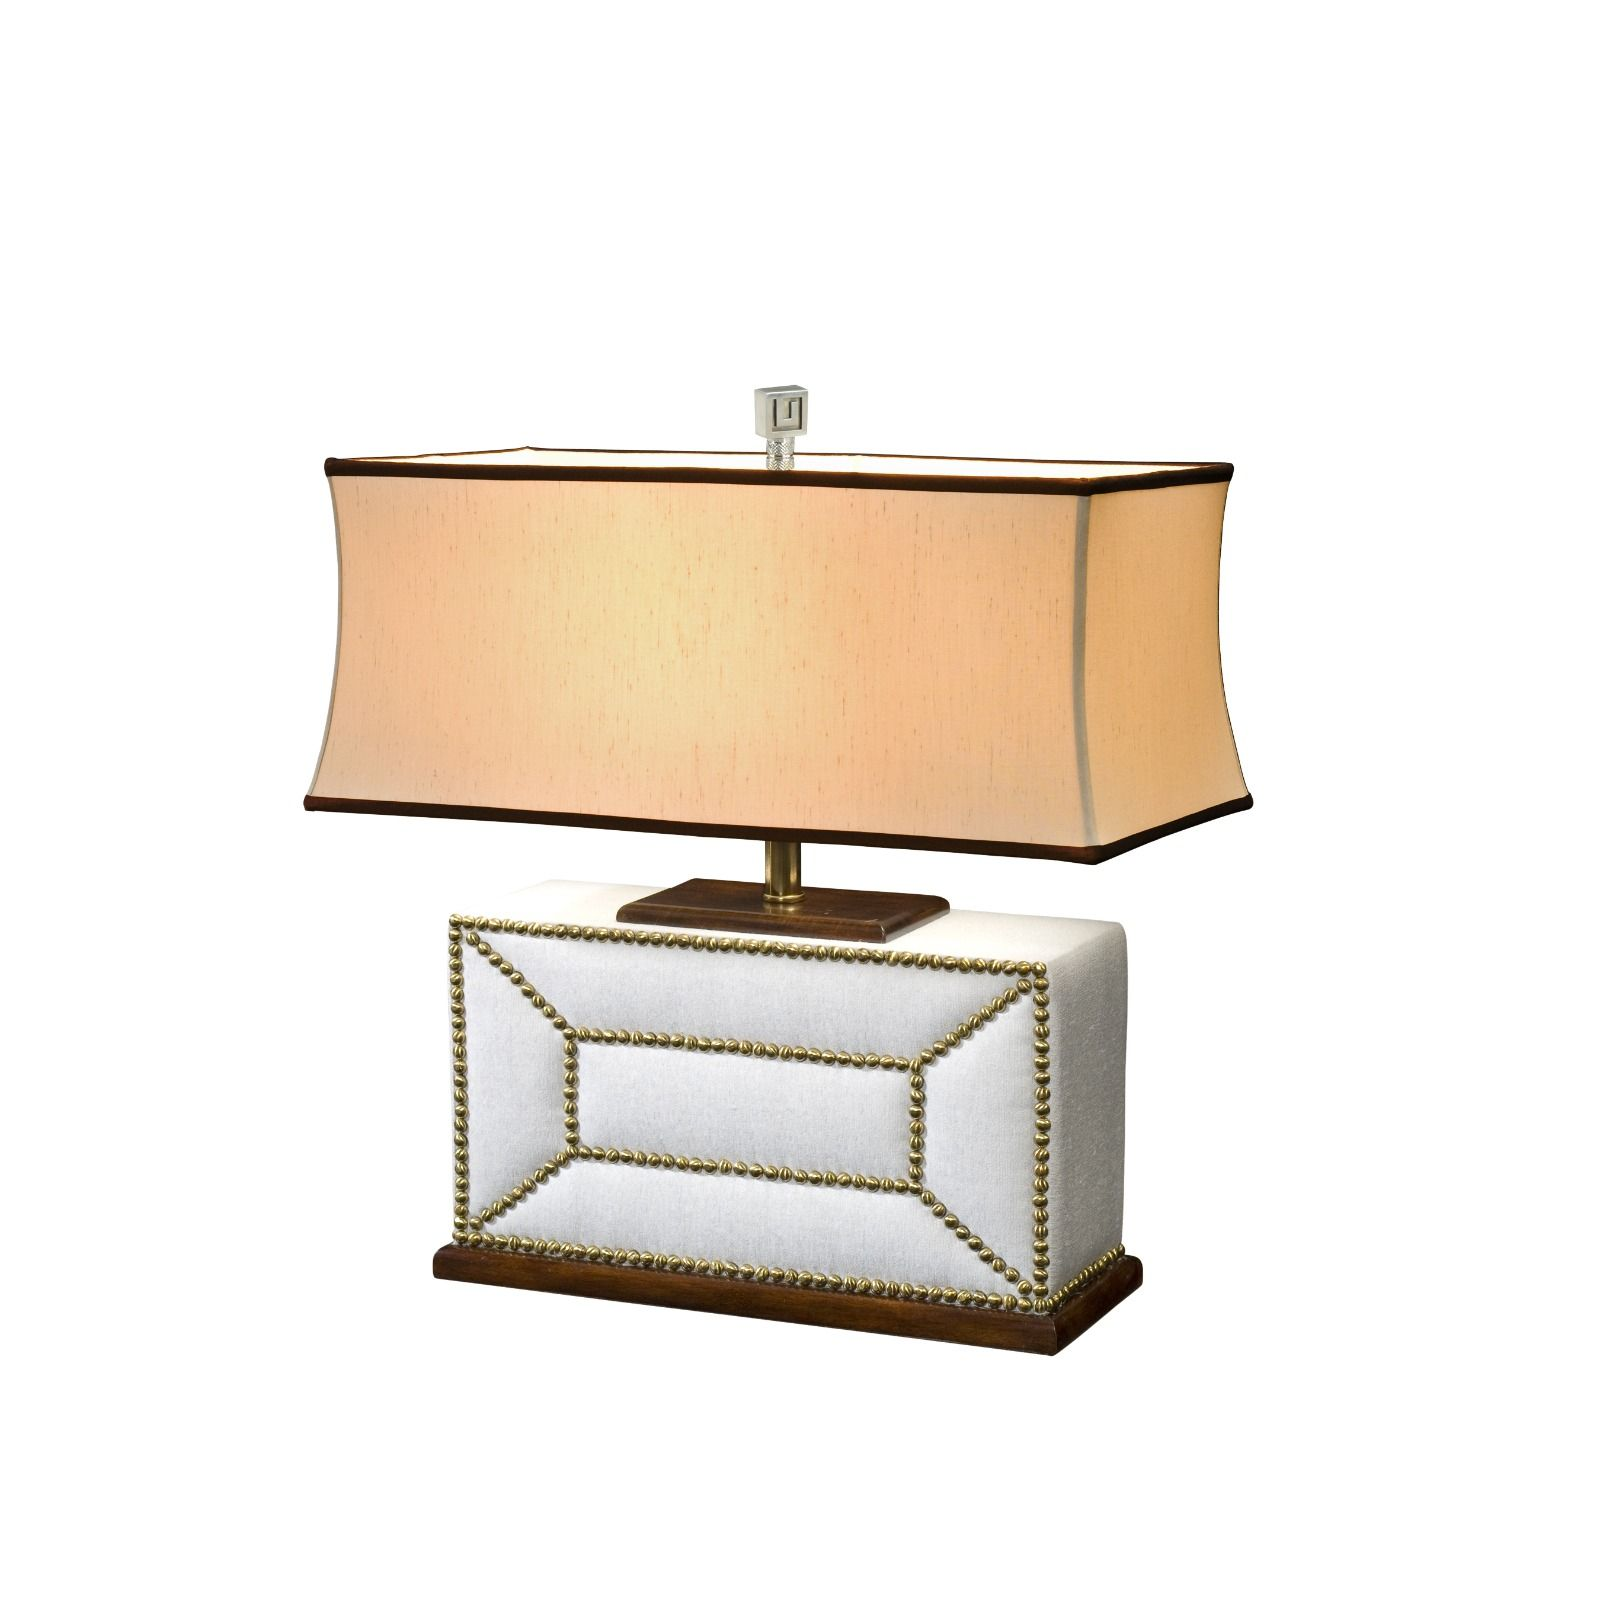 A fabric padded table lamp